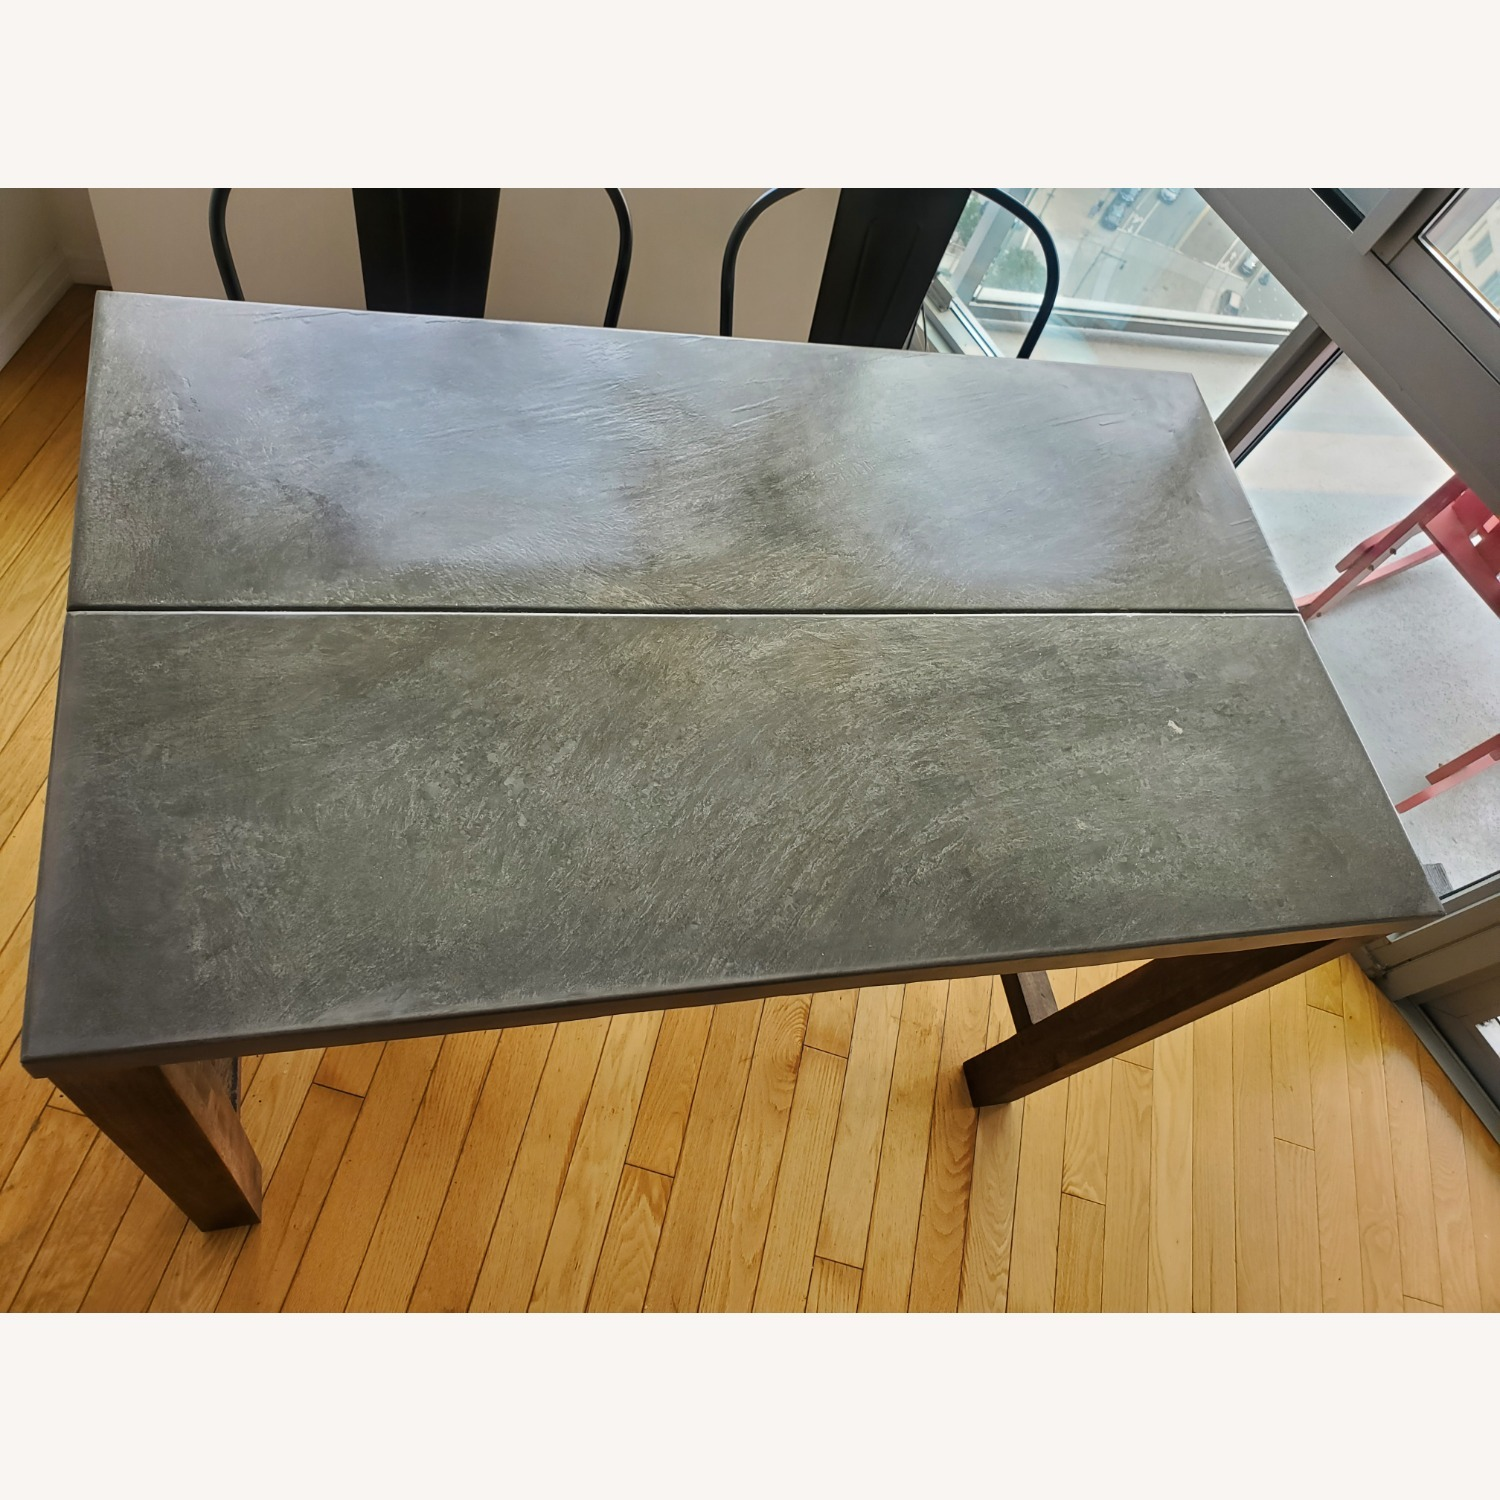 CB2 Industrial Dining Table & Chairs - image-3